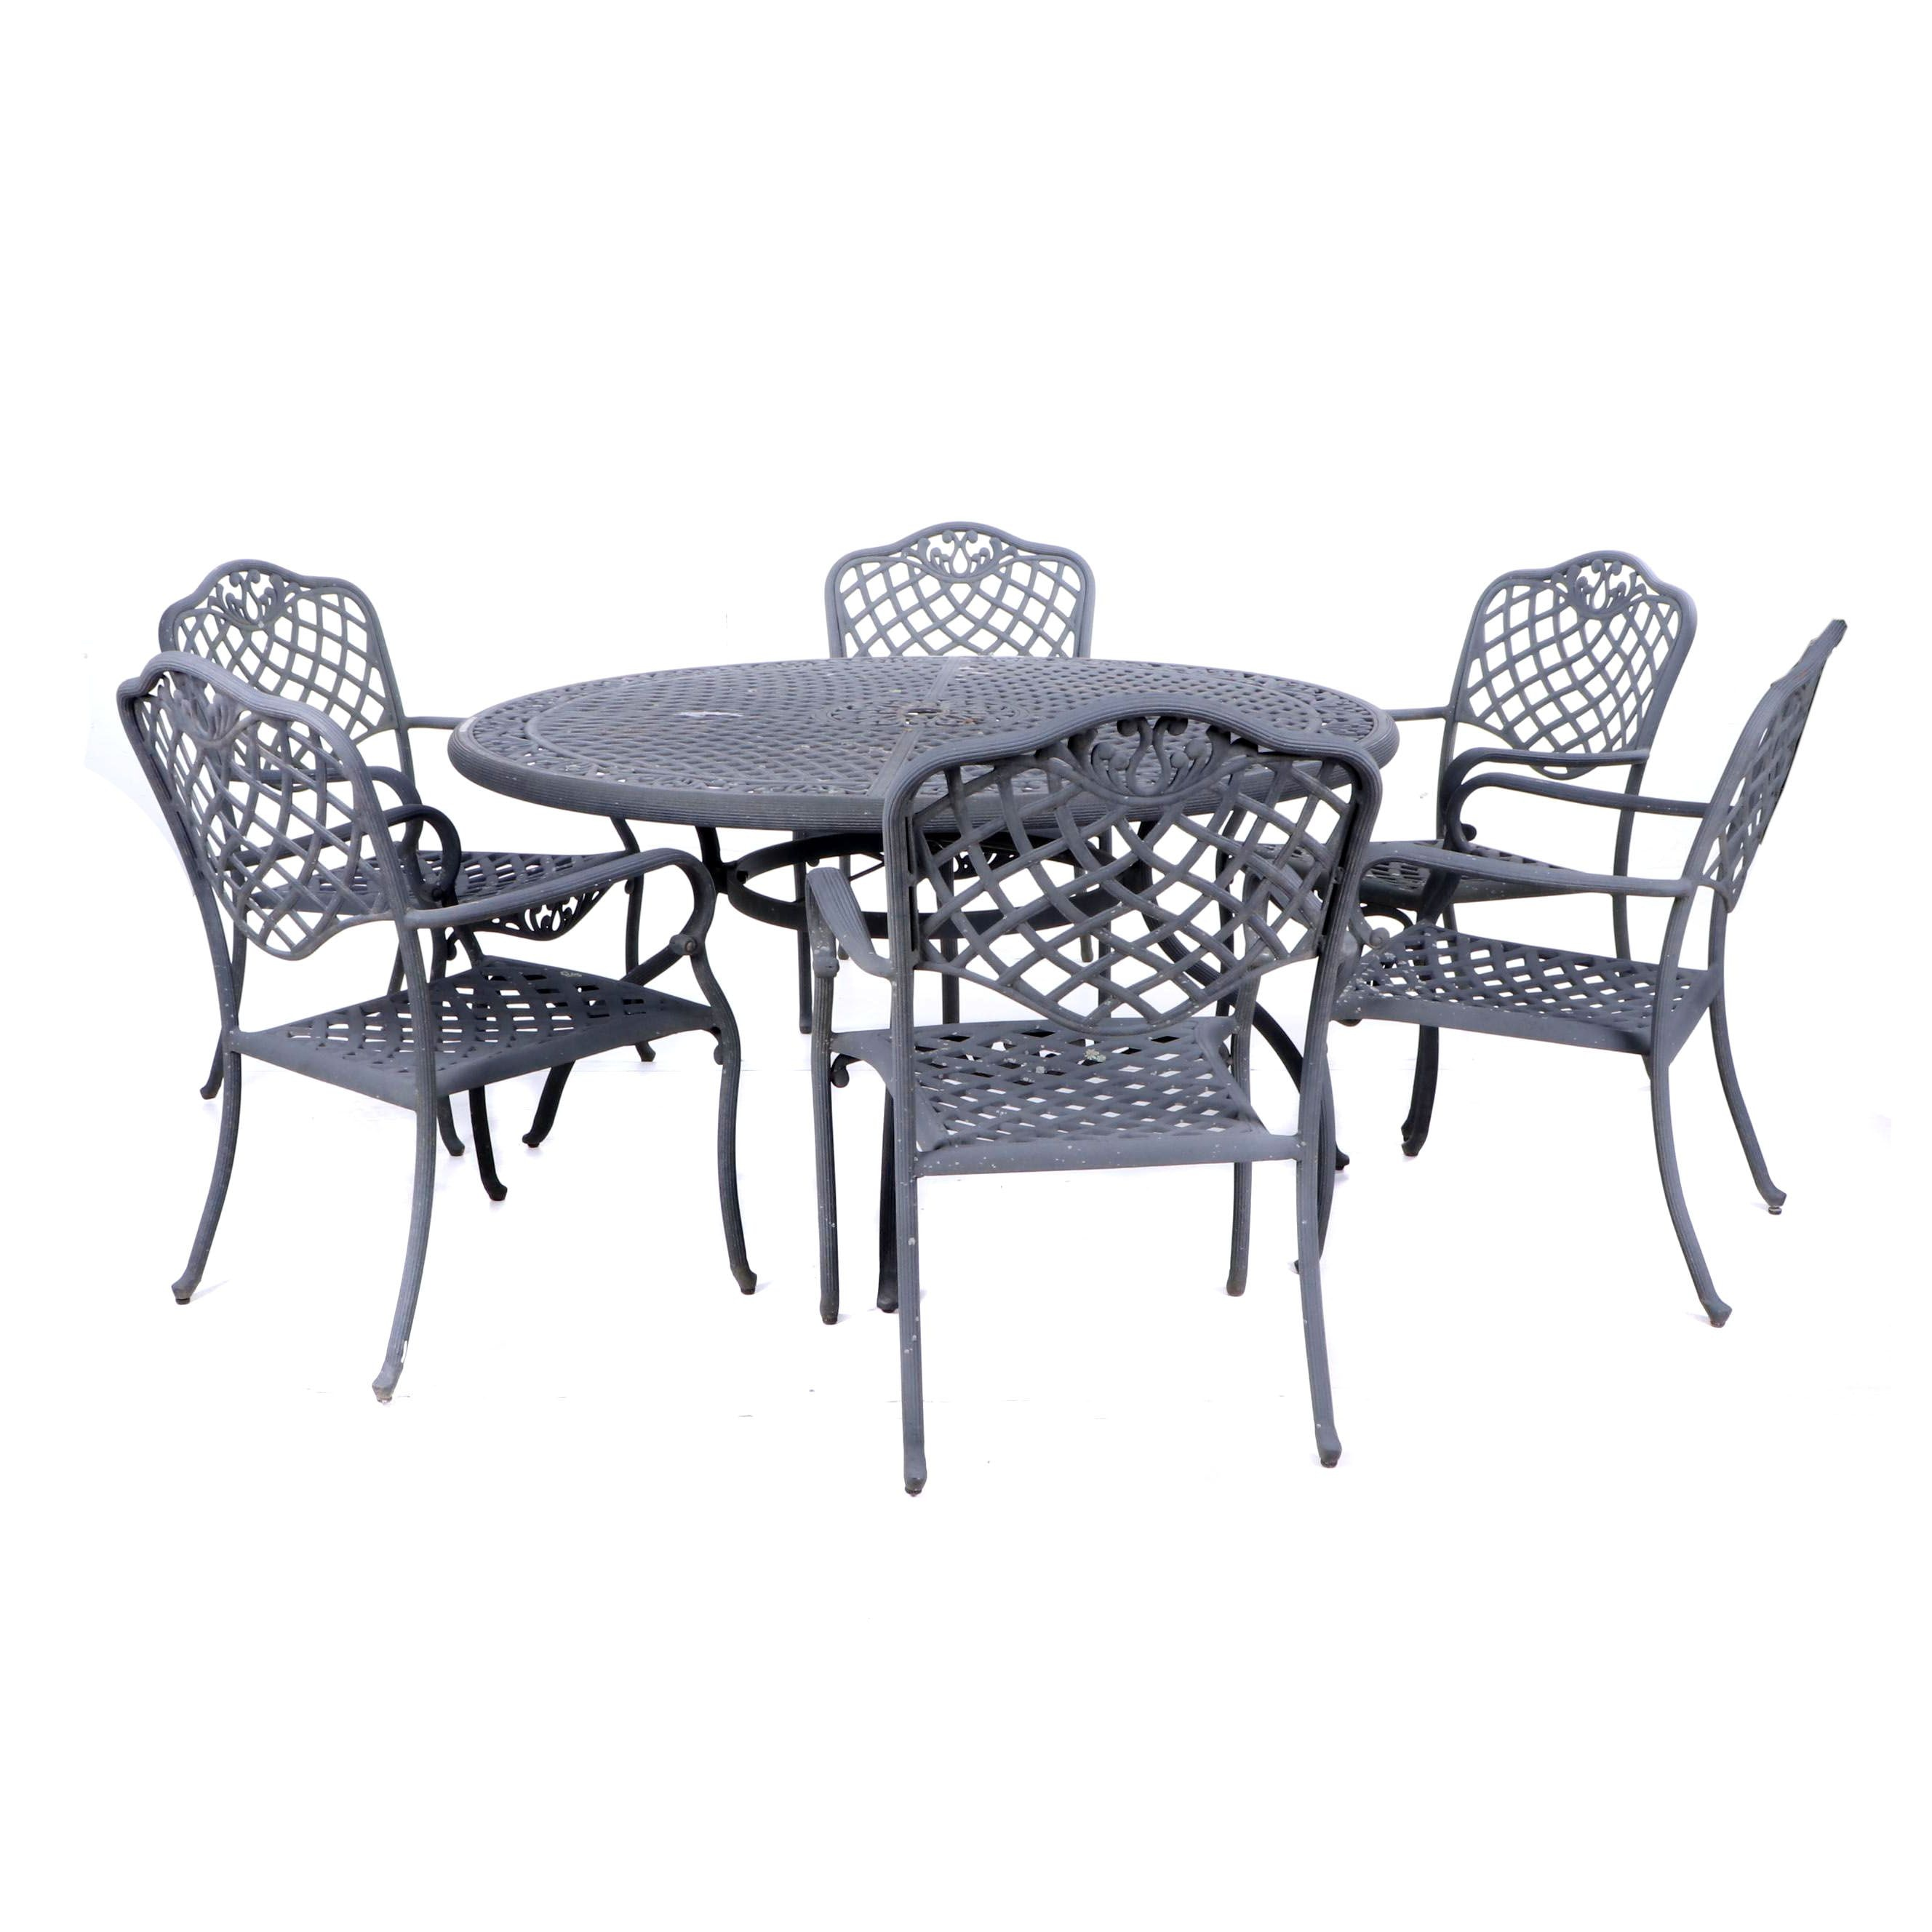 Contemporary Metal Patio Table and Six Chairs